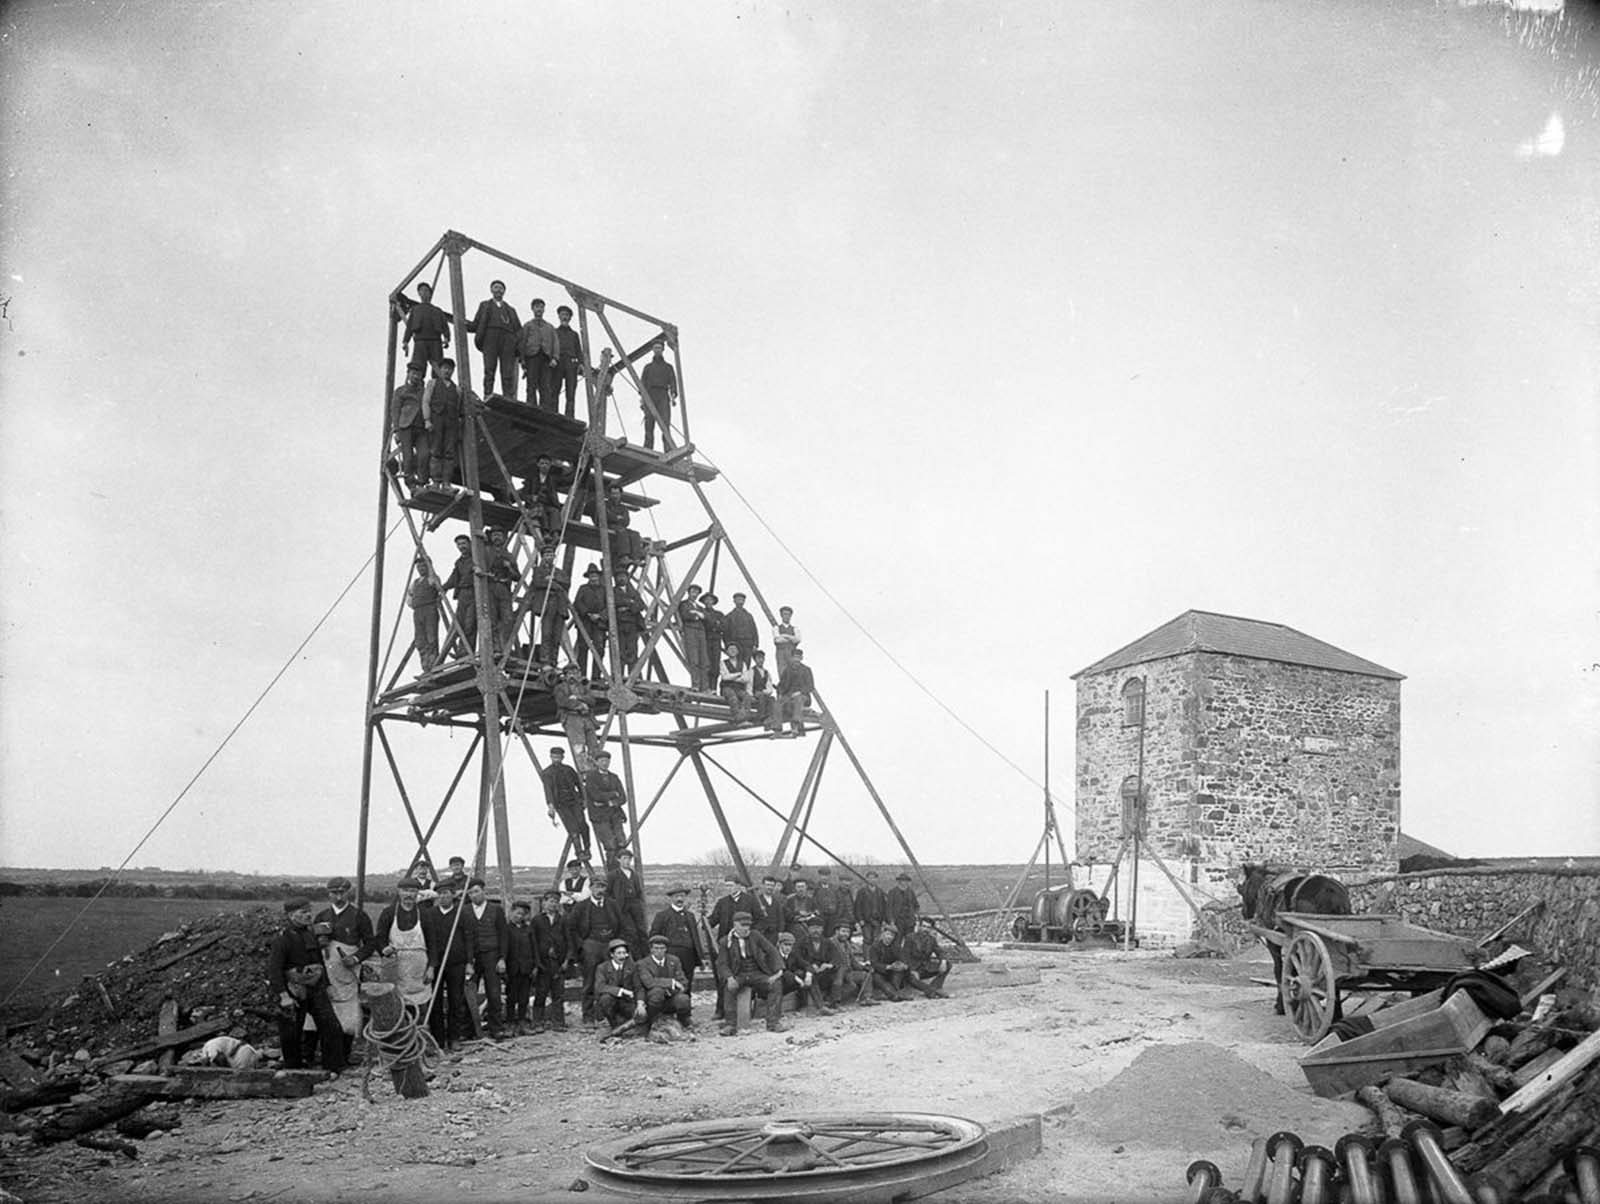 Workers at a mine in Knockmahon, County Waterford. 1906.